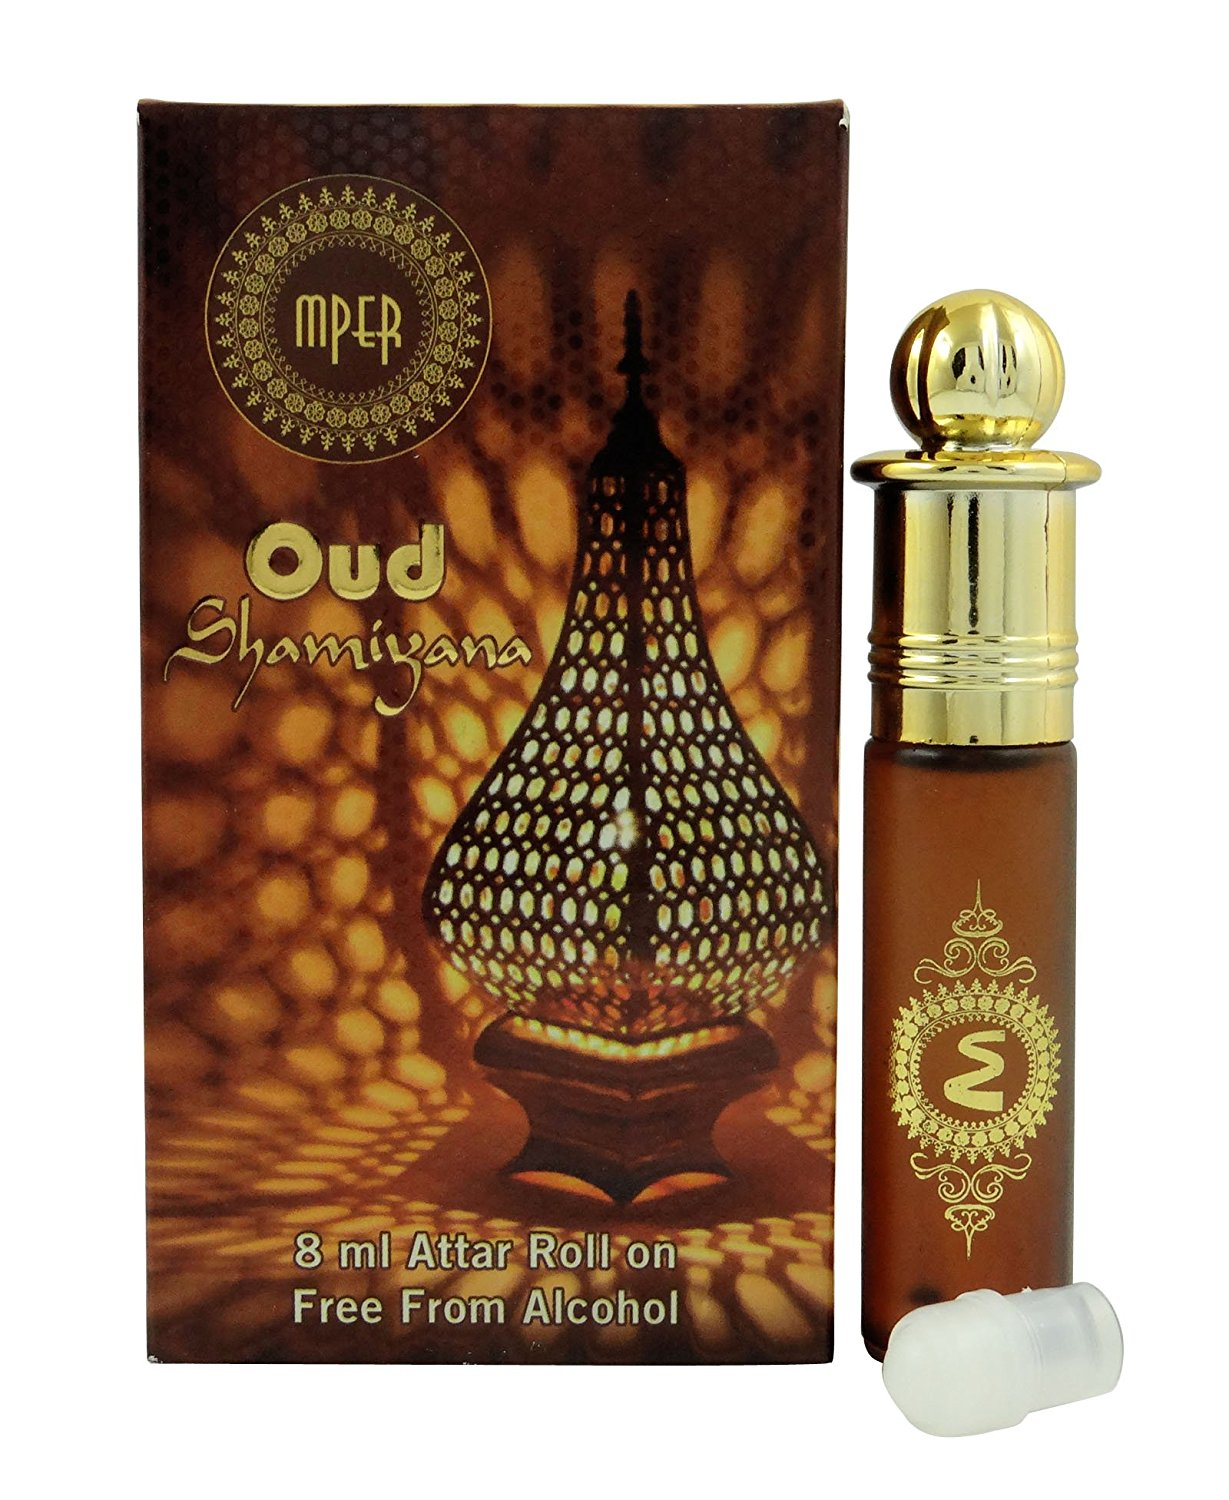 Cheap Perfume Al Oud Find Deals On Line At Alibabacom Parfum Rehab White Musk Minyak Wangi Get Quotations Madni Samiyana Attar Oil 100 Pure And Natural 8 Ml